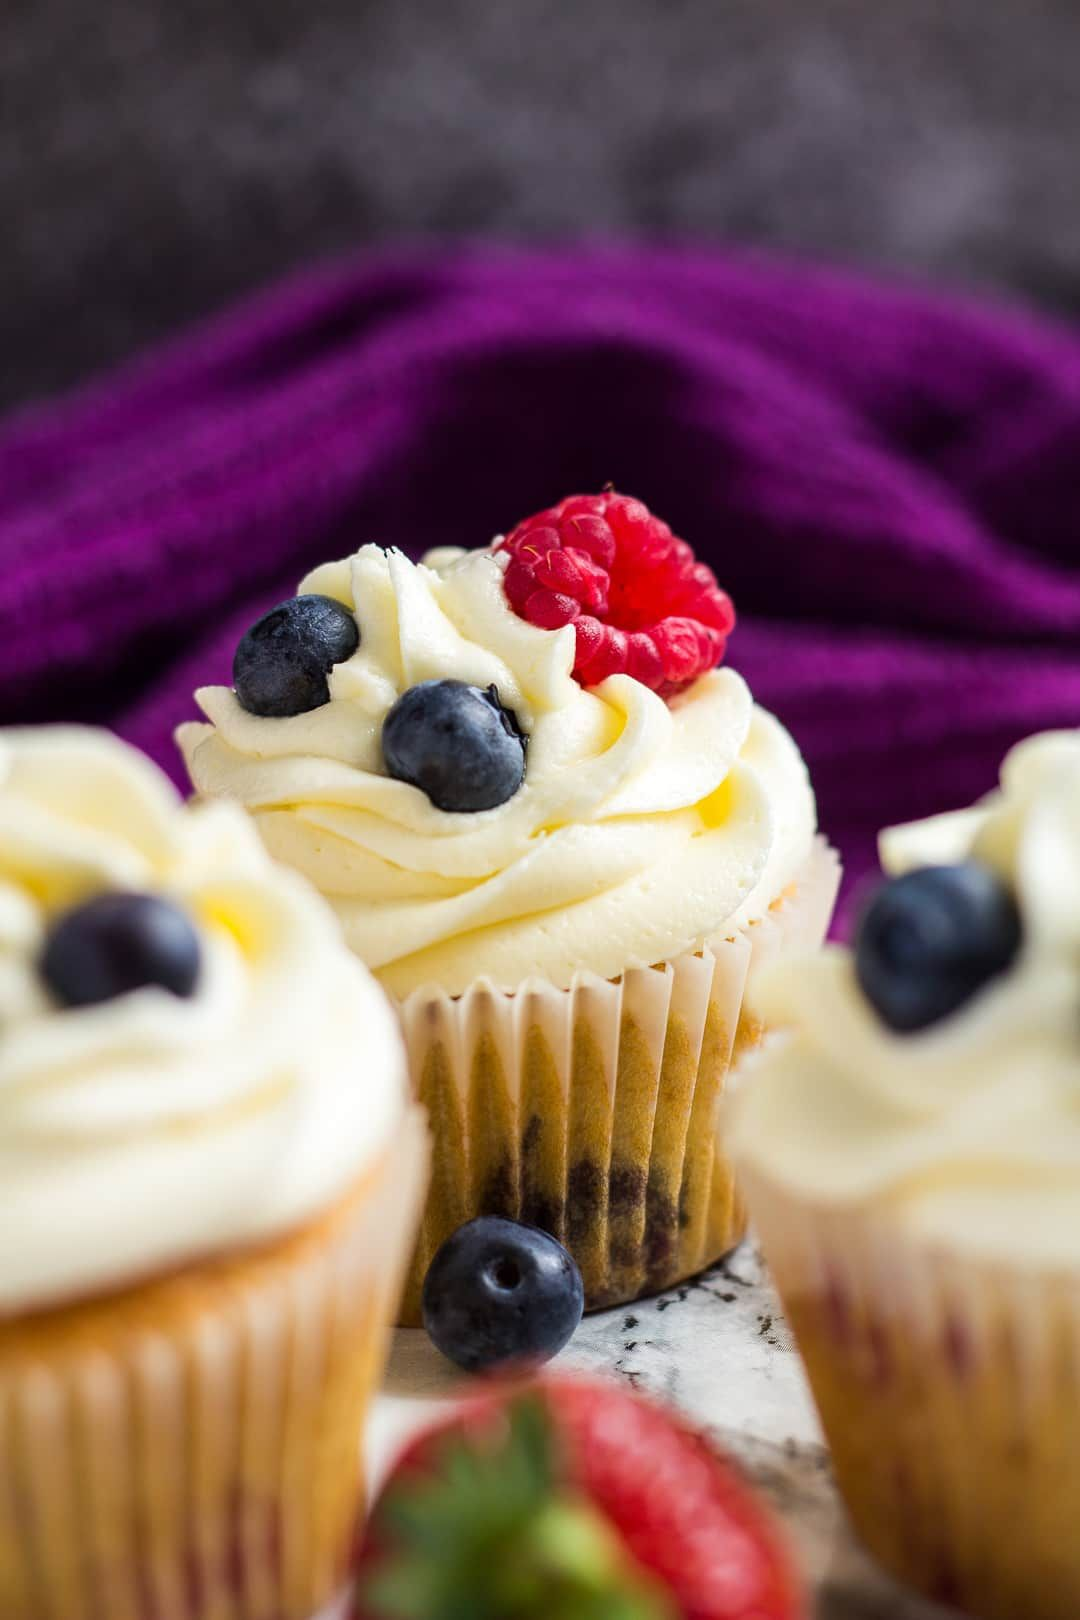 Summer Berry Cupcakes- Deliciously moist and fluffy vanilla cupcakes stuffed with summer berries, and topped with a sweet buttercream frosting!